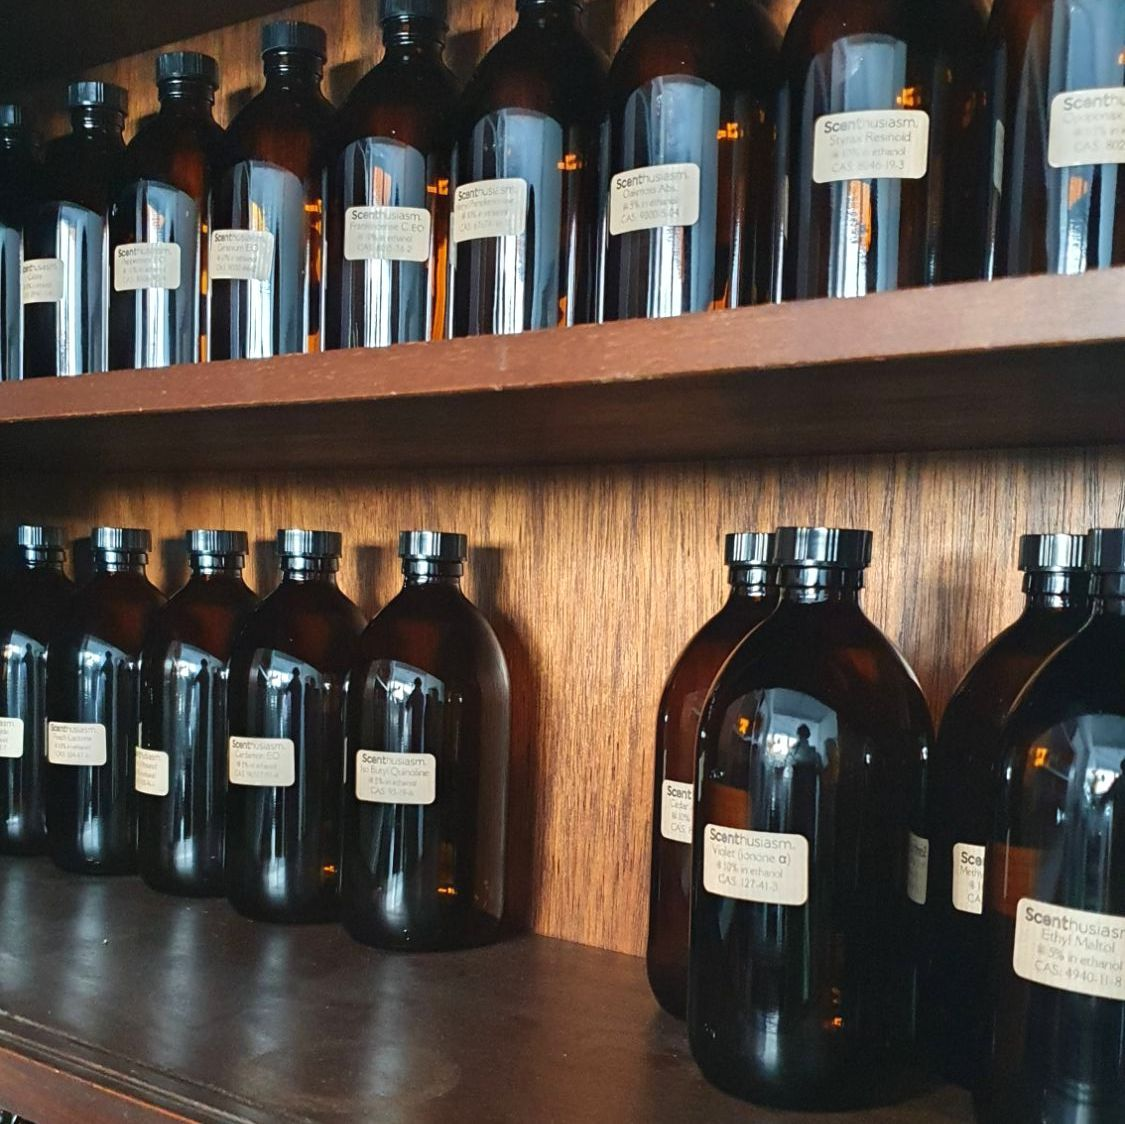 A shelf containing a number of dark brown bottles